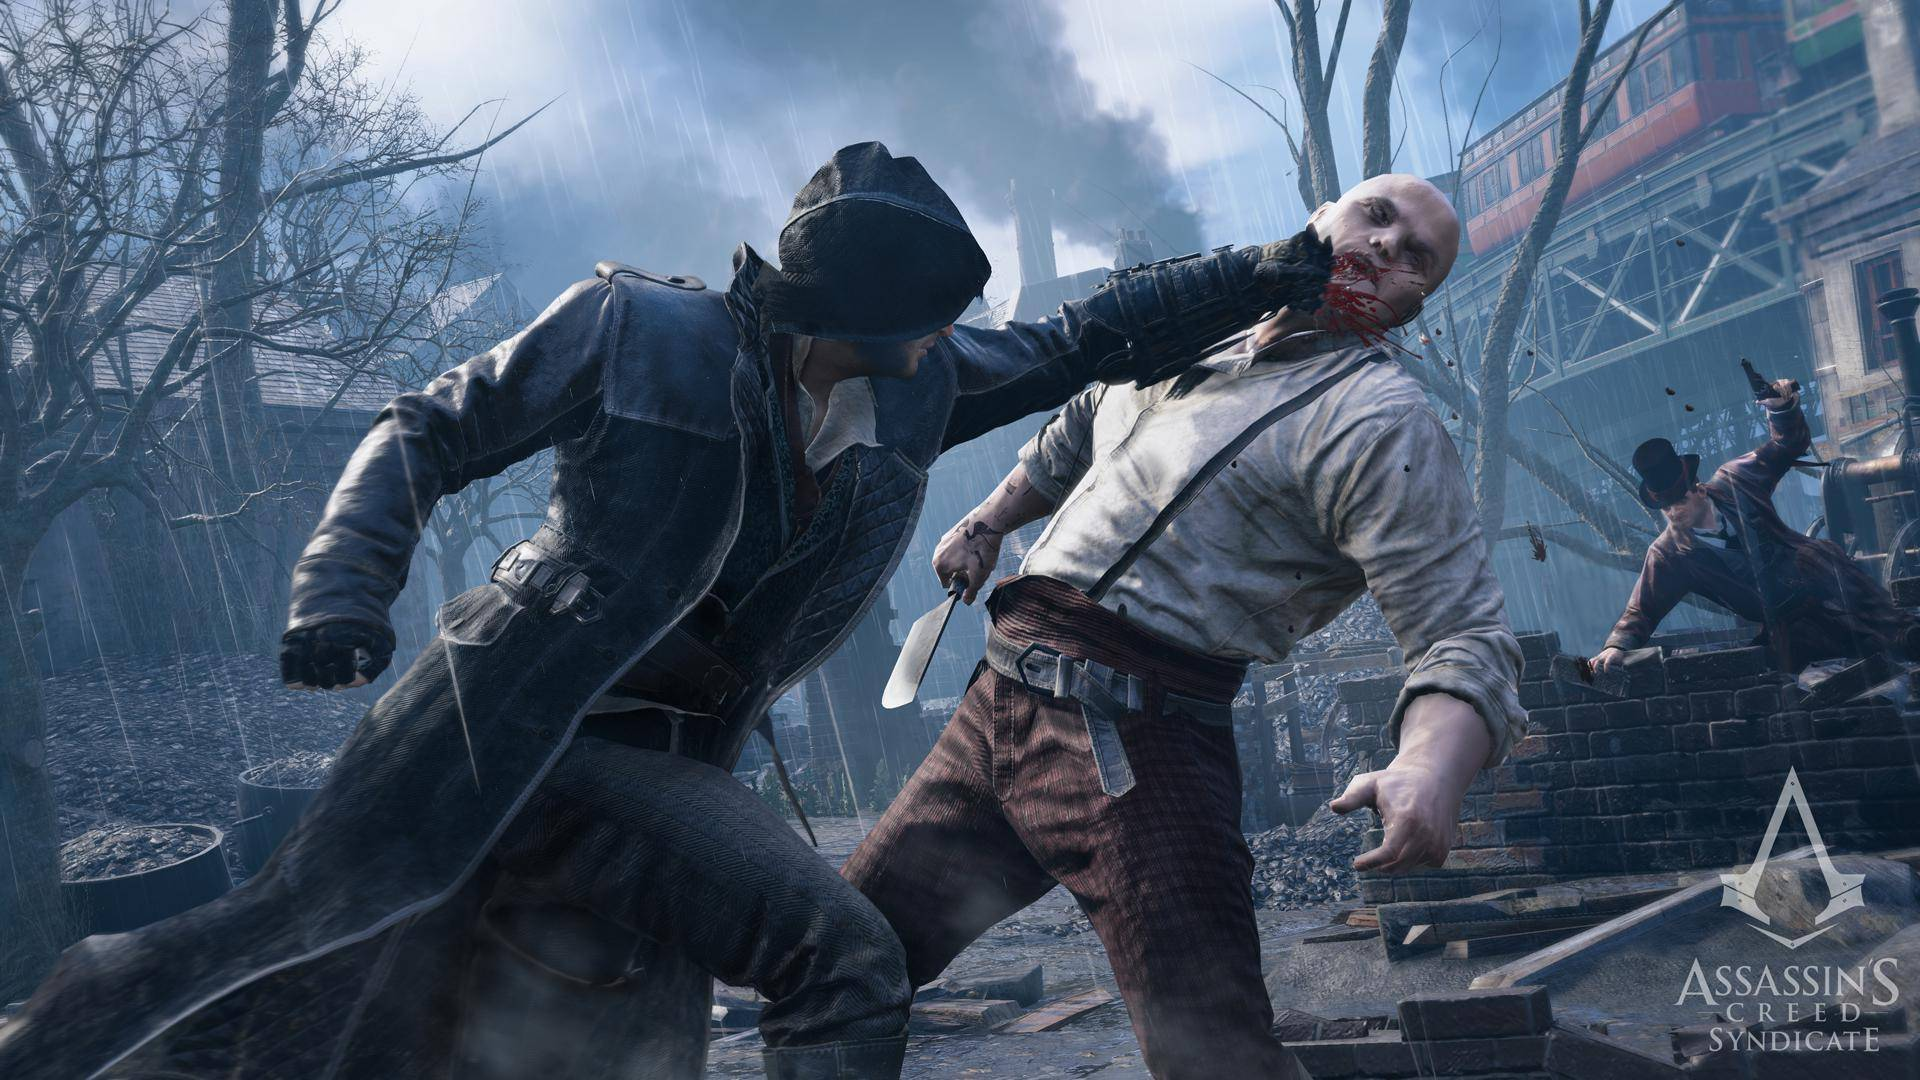 Regarder la bande-annonce de Assassins Creed Syndicate